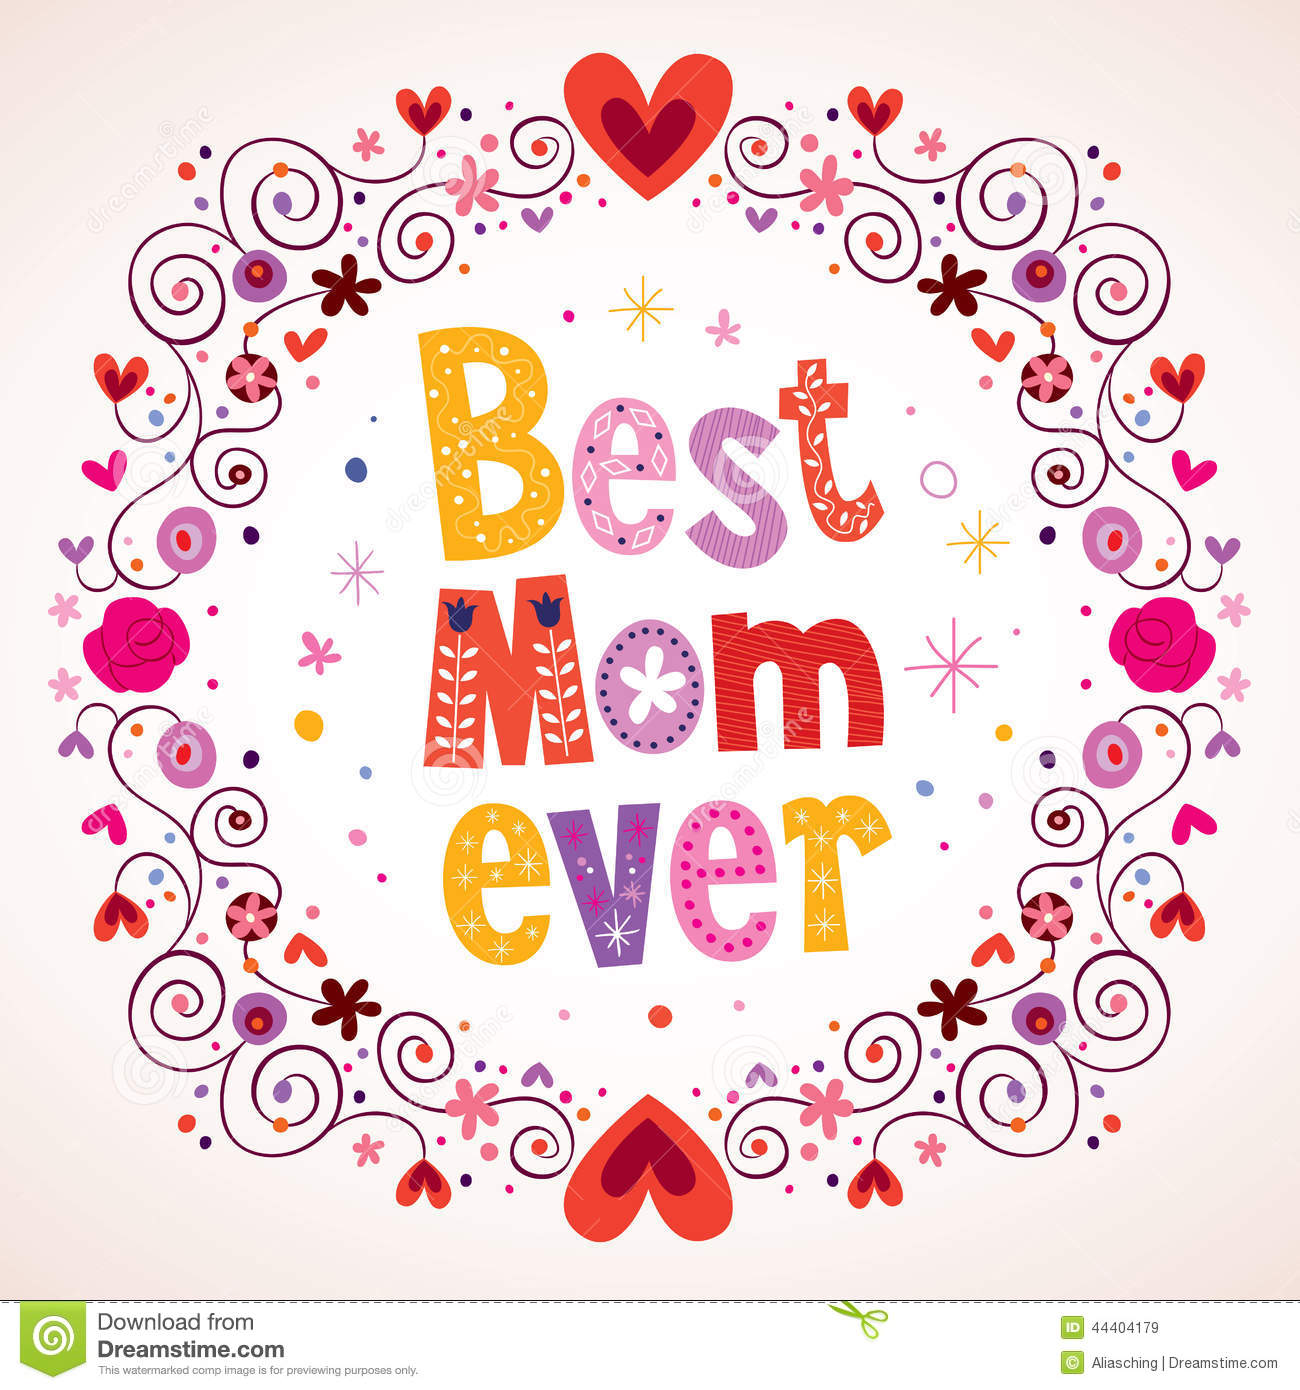 Best Mom Ever Hearts And Flowers Card Stock Vector - Image: 44404179